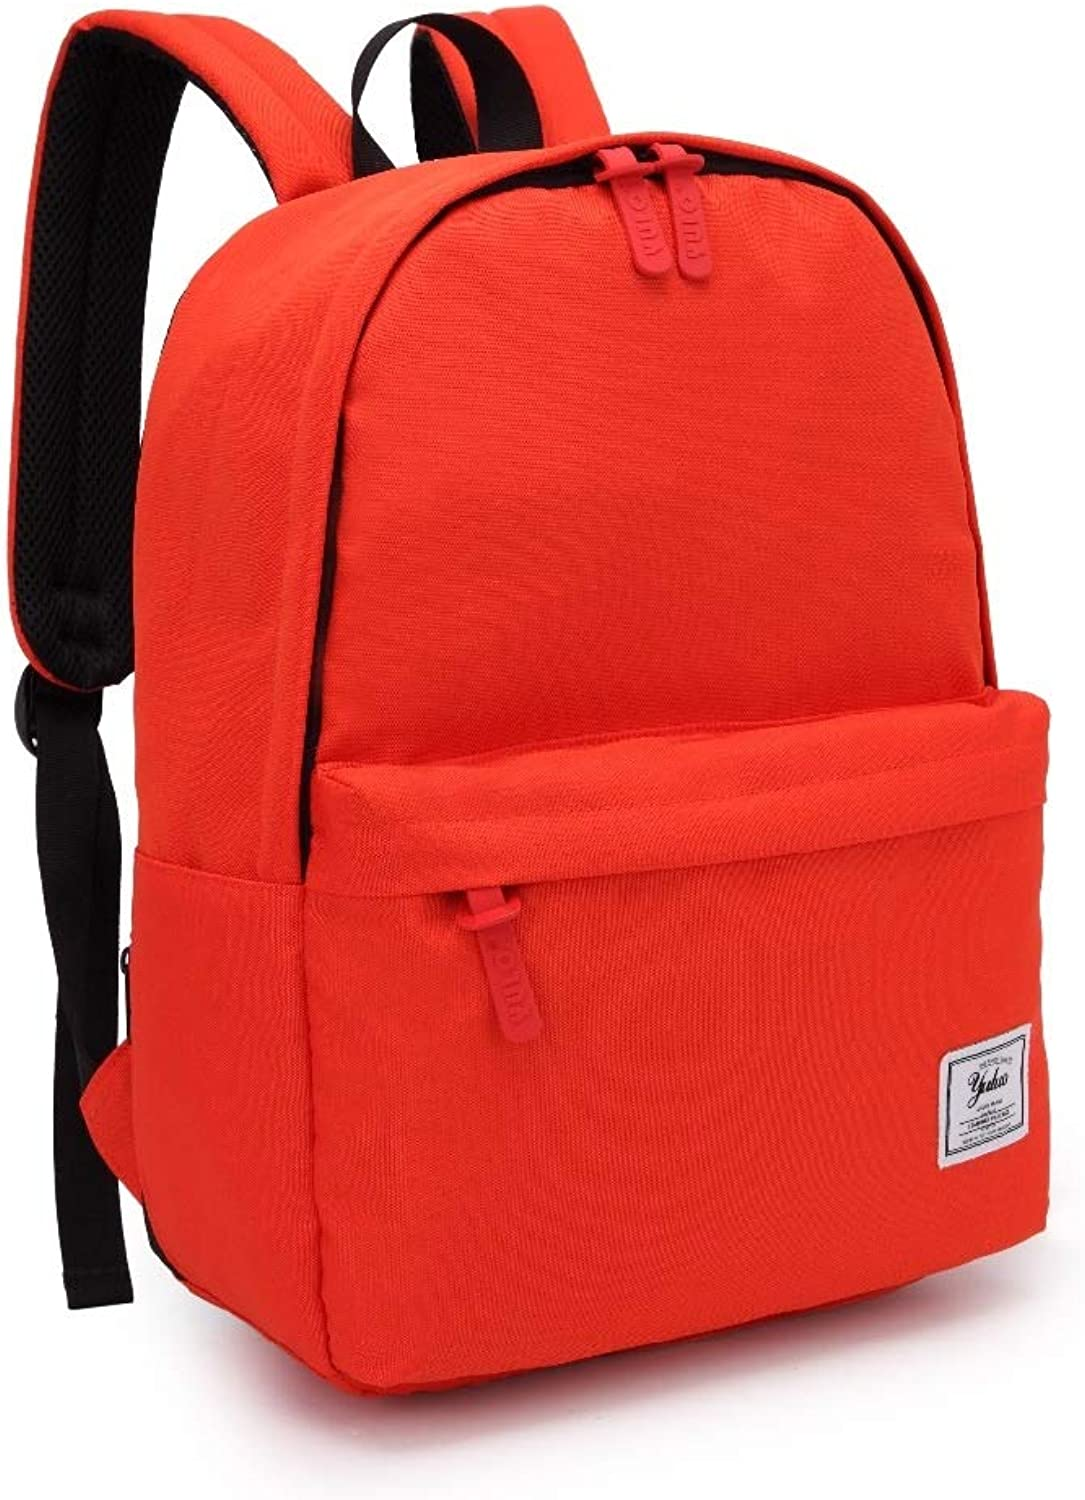 School Backpack, Unisex Classic Lightweight Water Resistant College Rucksack Travel Backpack Fits 14Inch Laptop (color   Red)